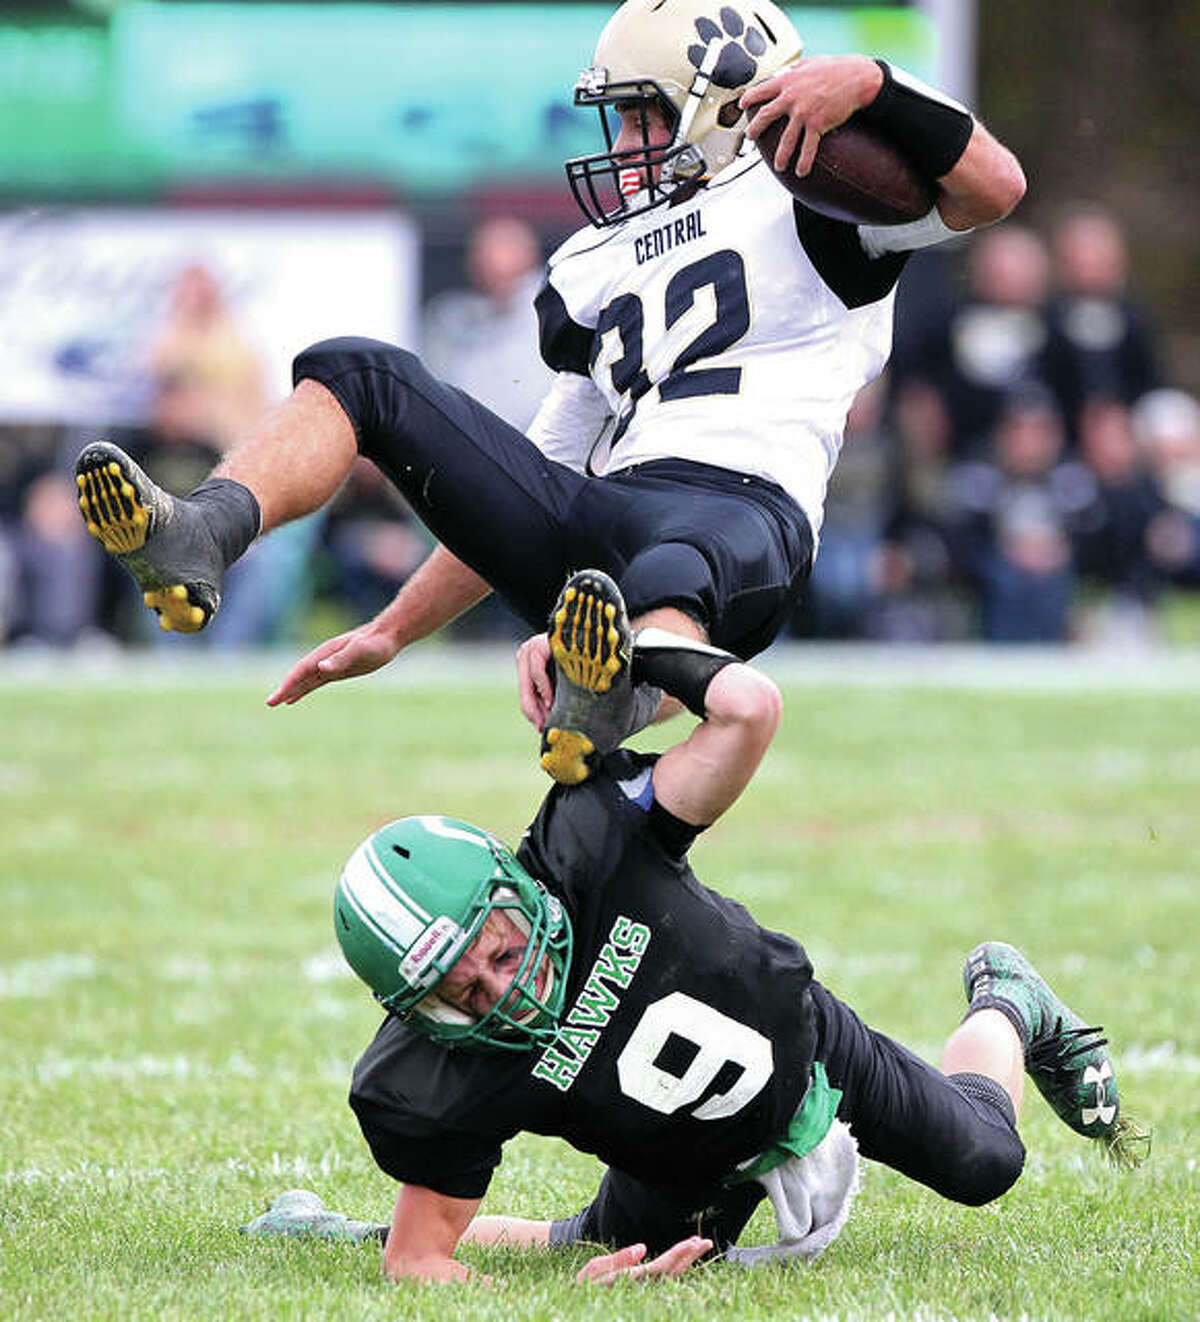 Carrollton's Zach Flowers stops Camp Point Central's Cole Williams during a game Saturday at Carrollton.